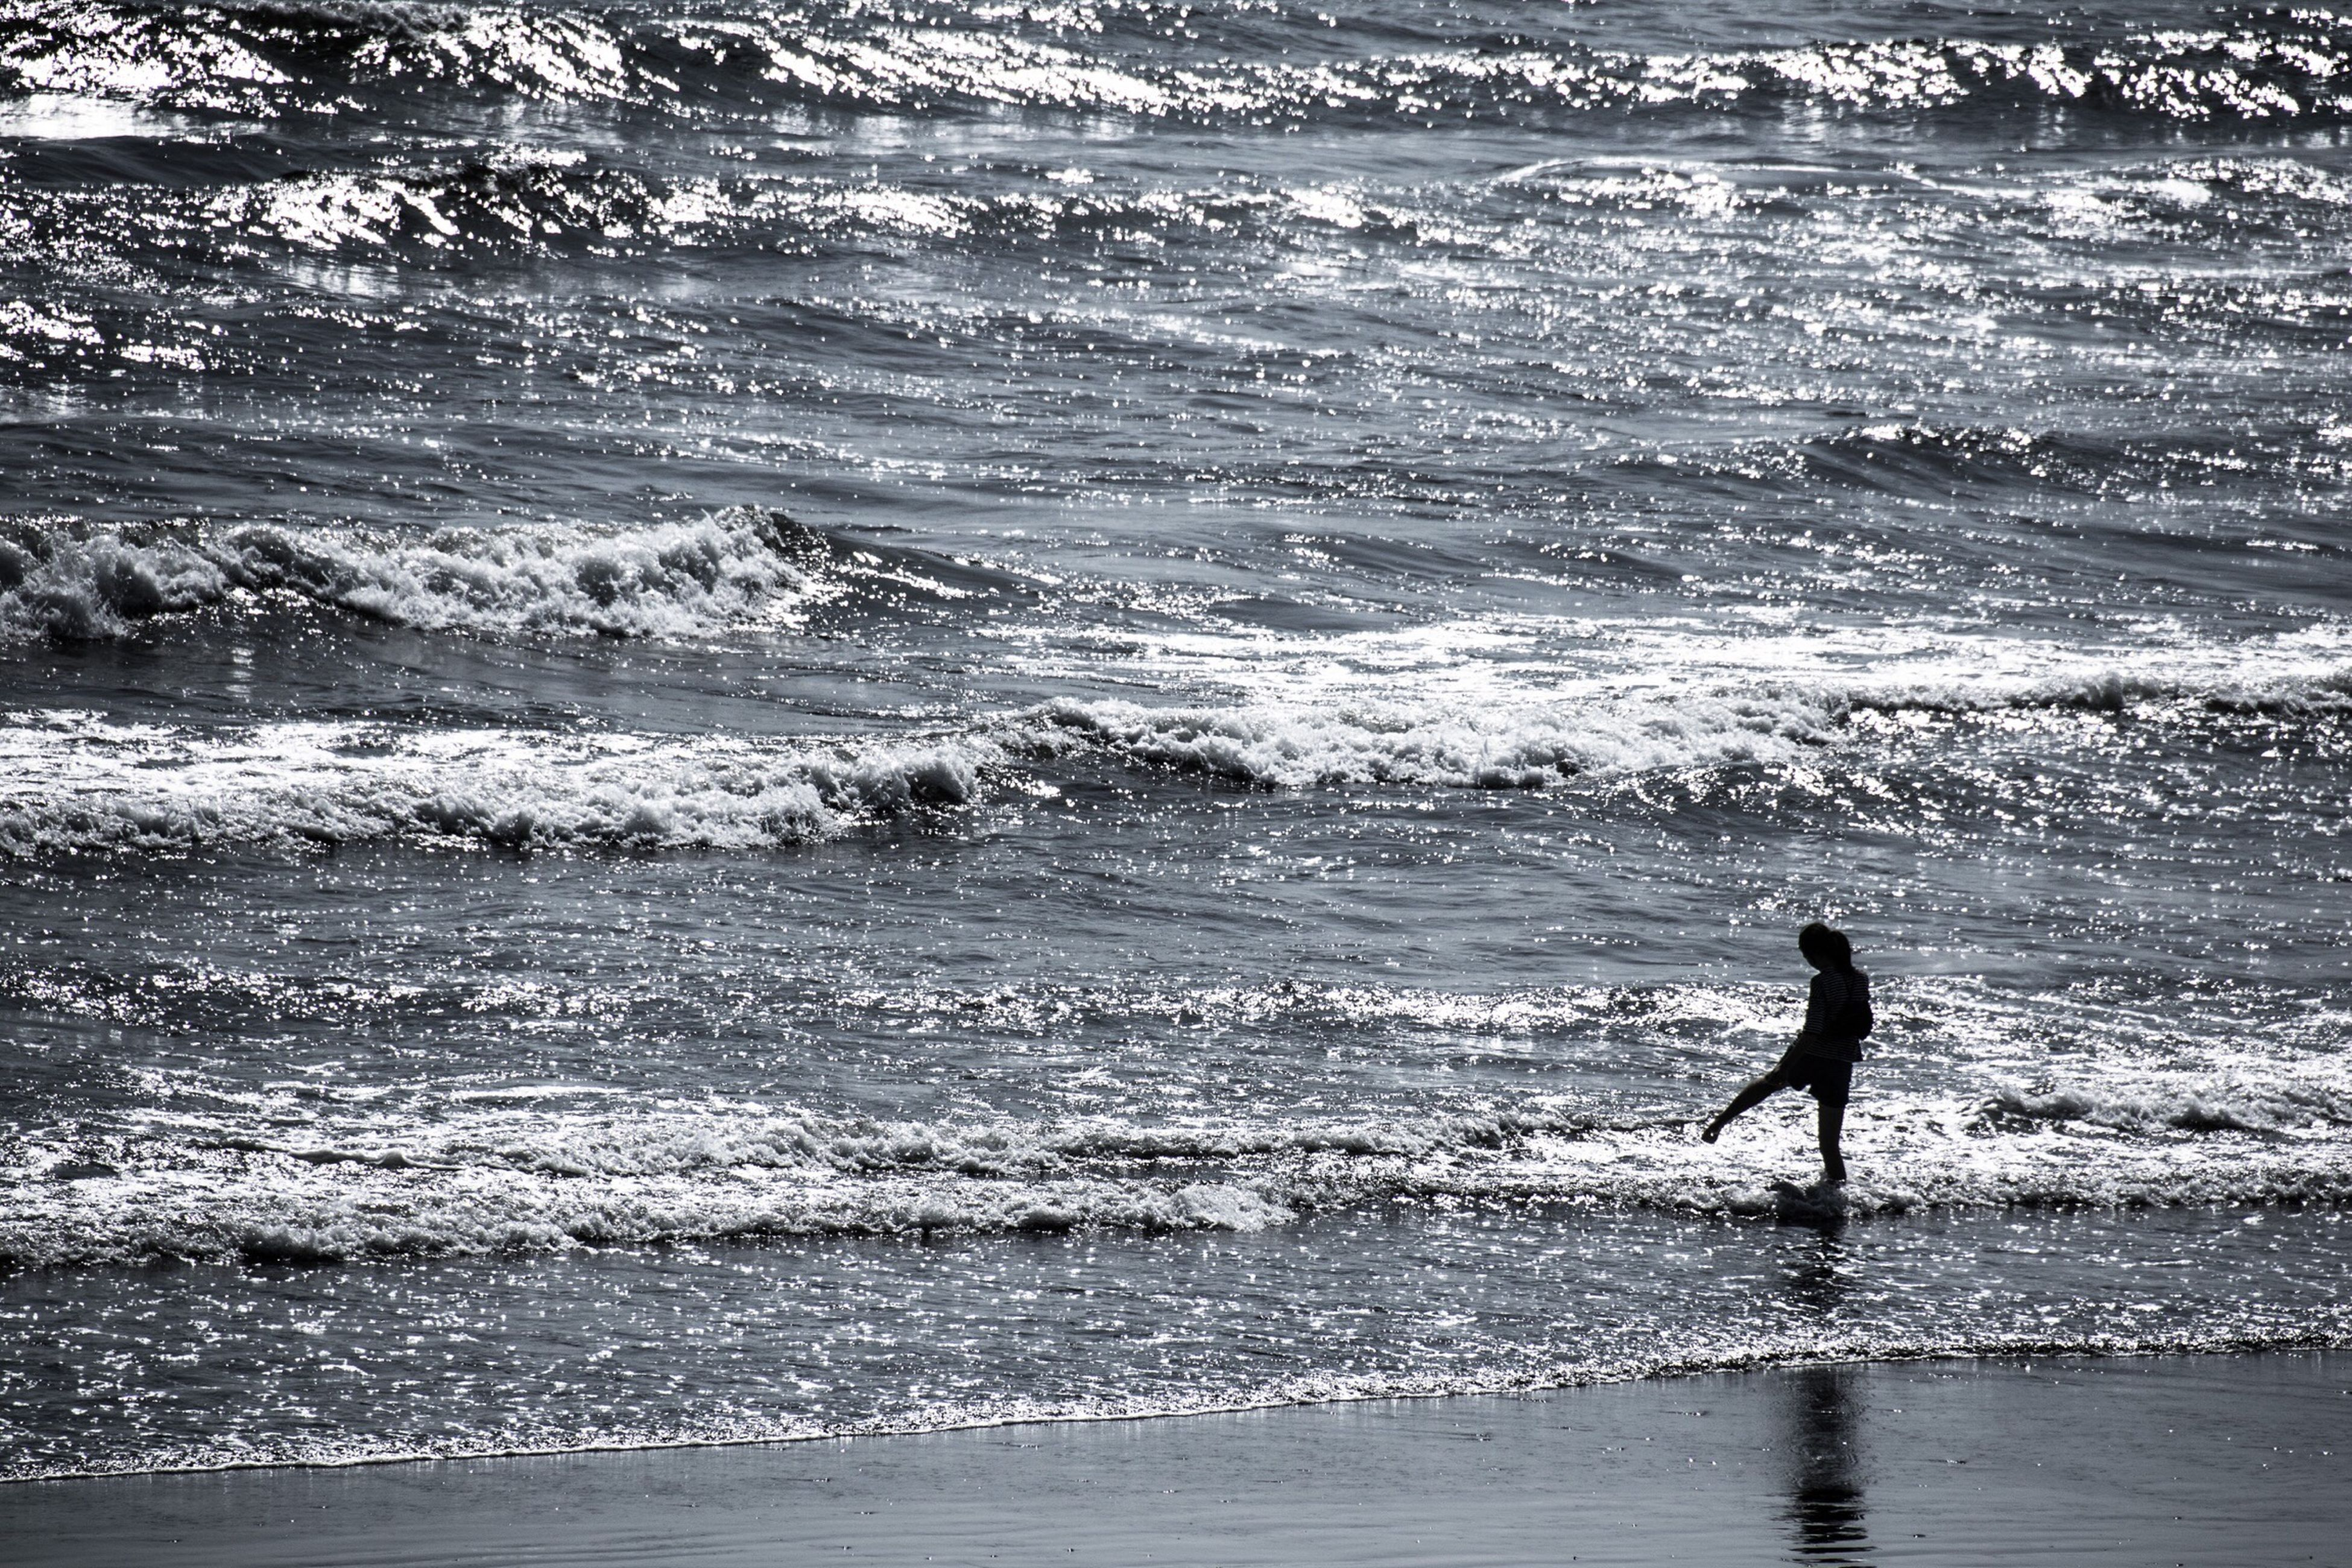 water, sea, leisure activity, lifestyles, wave, beach, full length, silhouette, men, vacations, shore, nature, beauty in nature, surf, enjoyment, walking, scenics, horizon over water